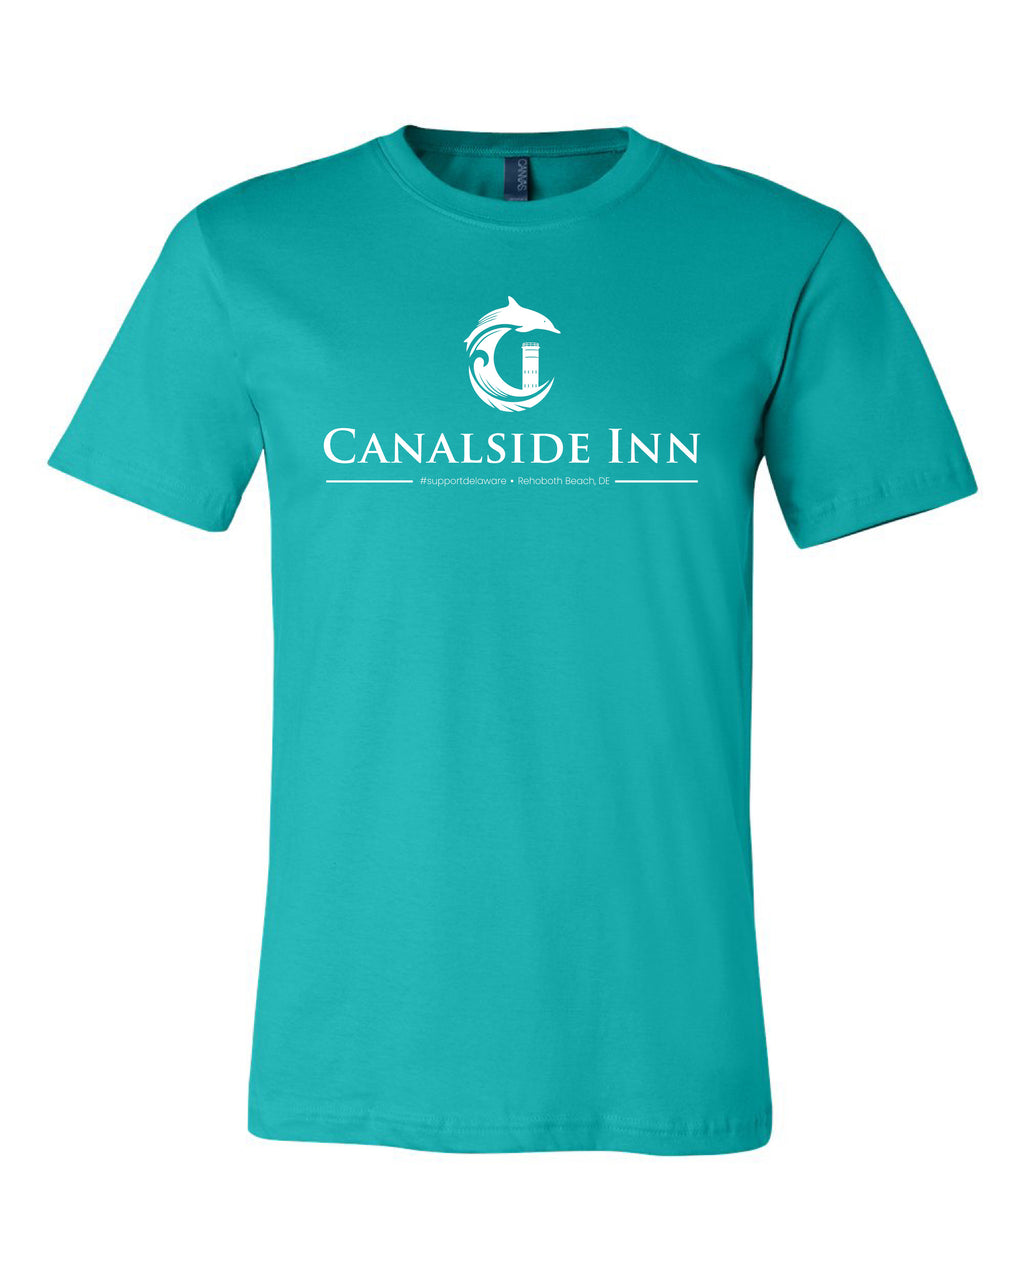 The Canalside Inn